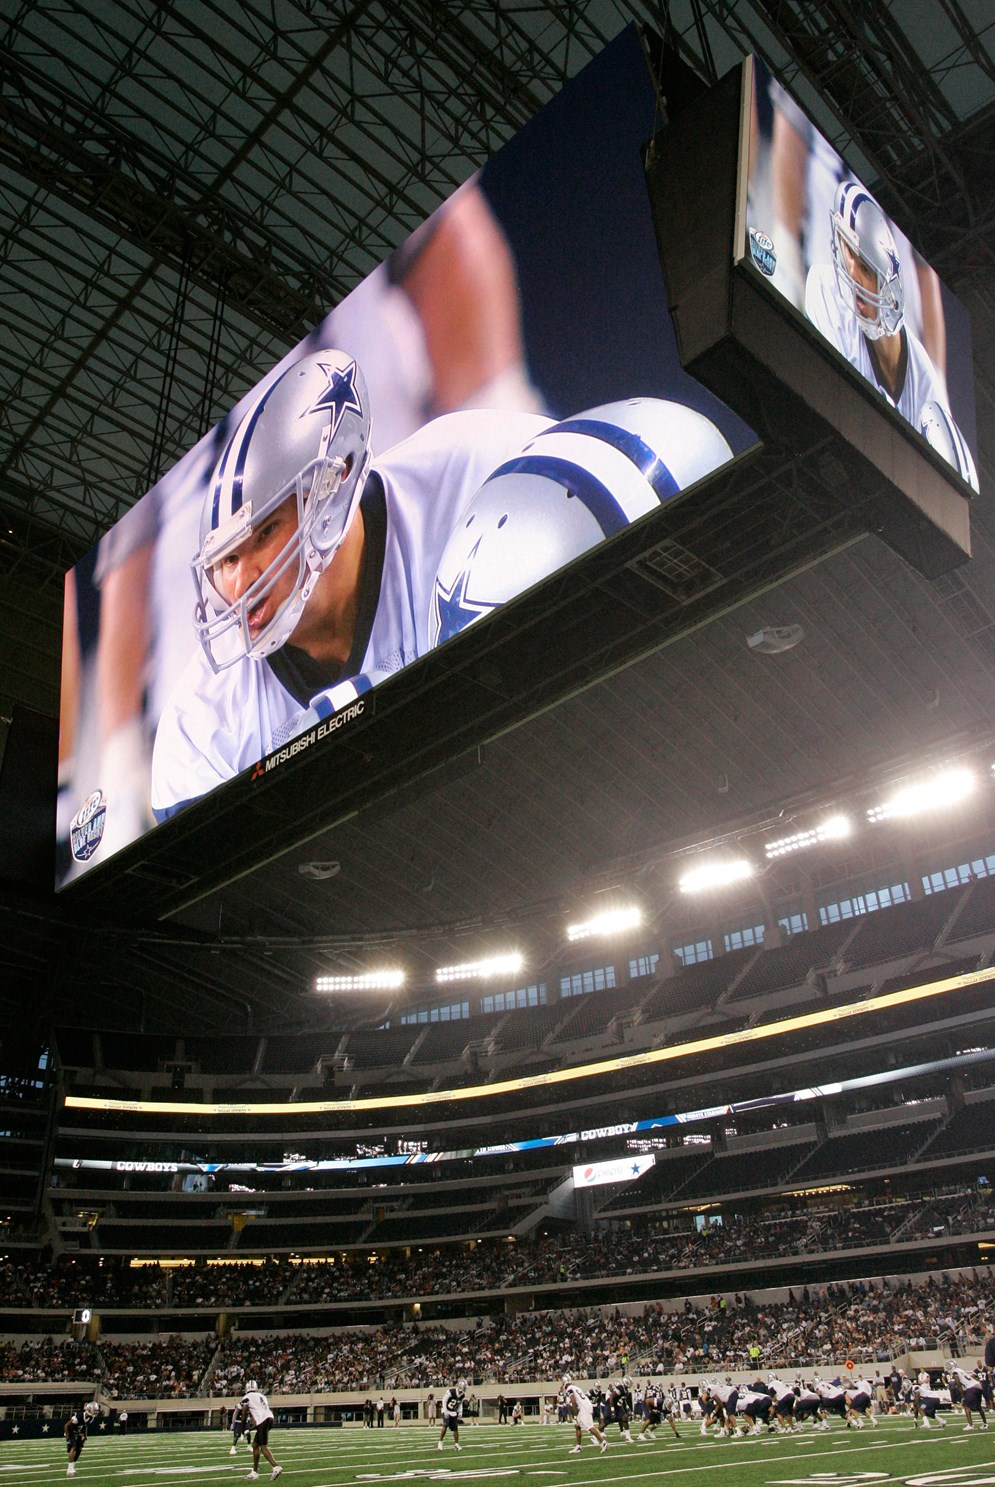 The Dallas Cowboys' high-definition video board is an example of how teams use technology to enhance the game experience. The screen is the equivalent of more than 4,900 52-inch flat-panel TVs. (AP Photo/Tony Gutierrez)